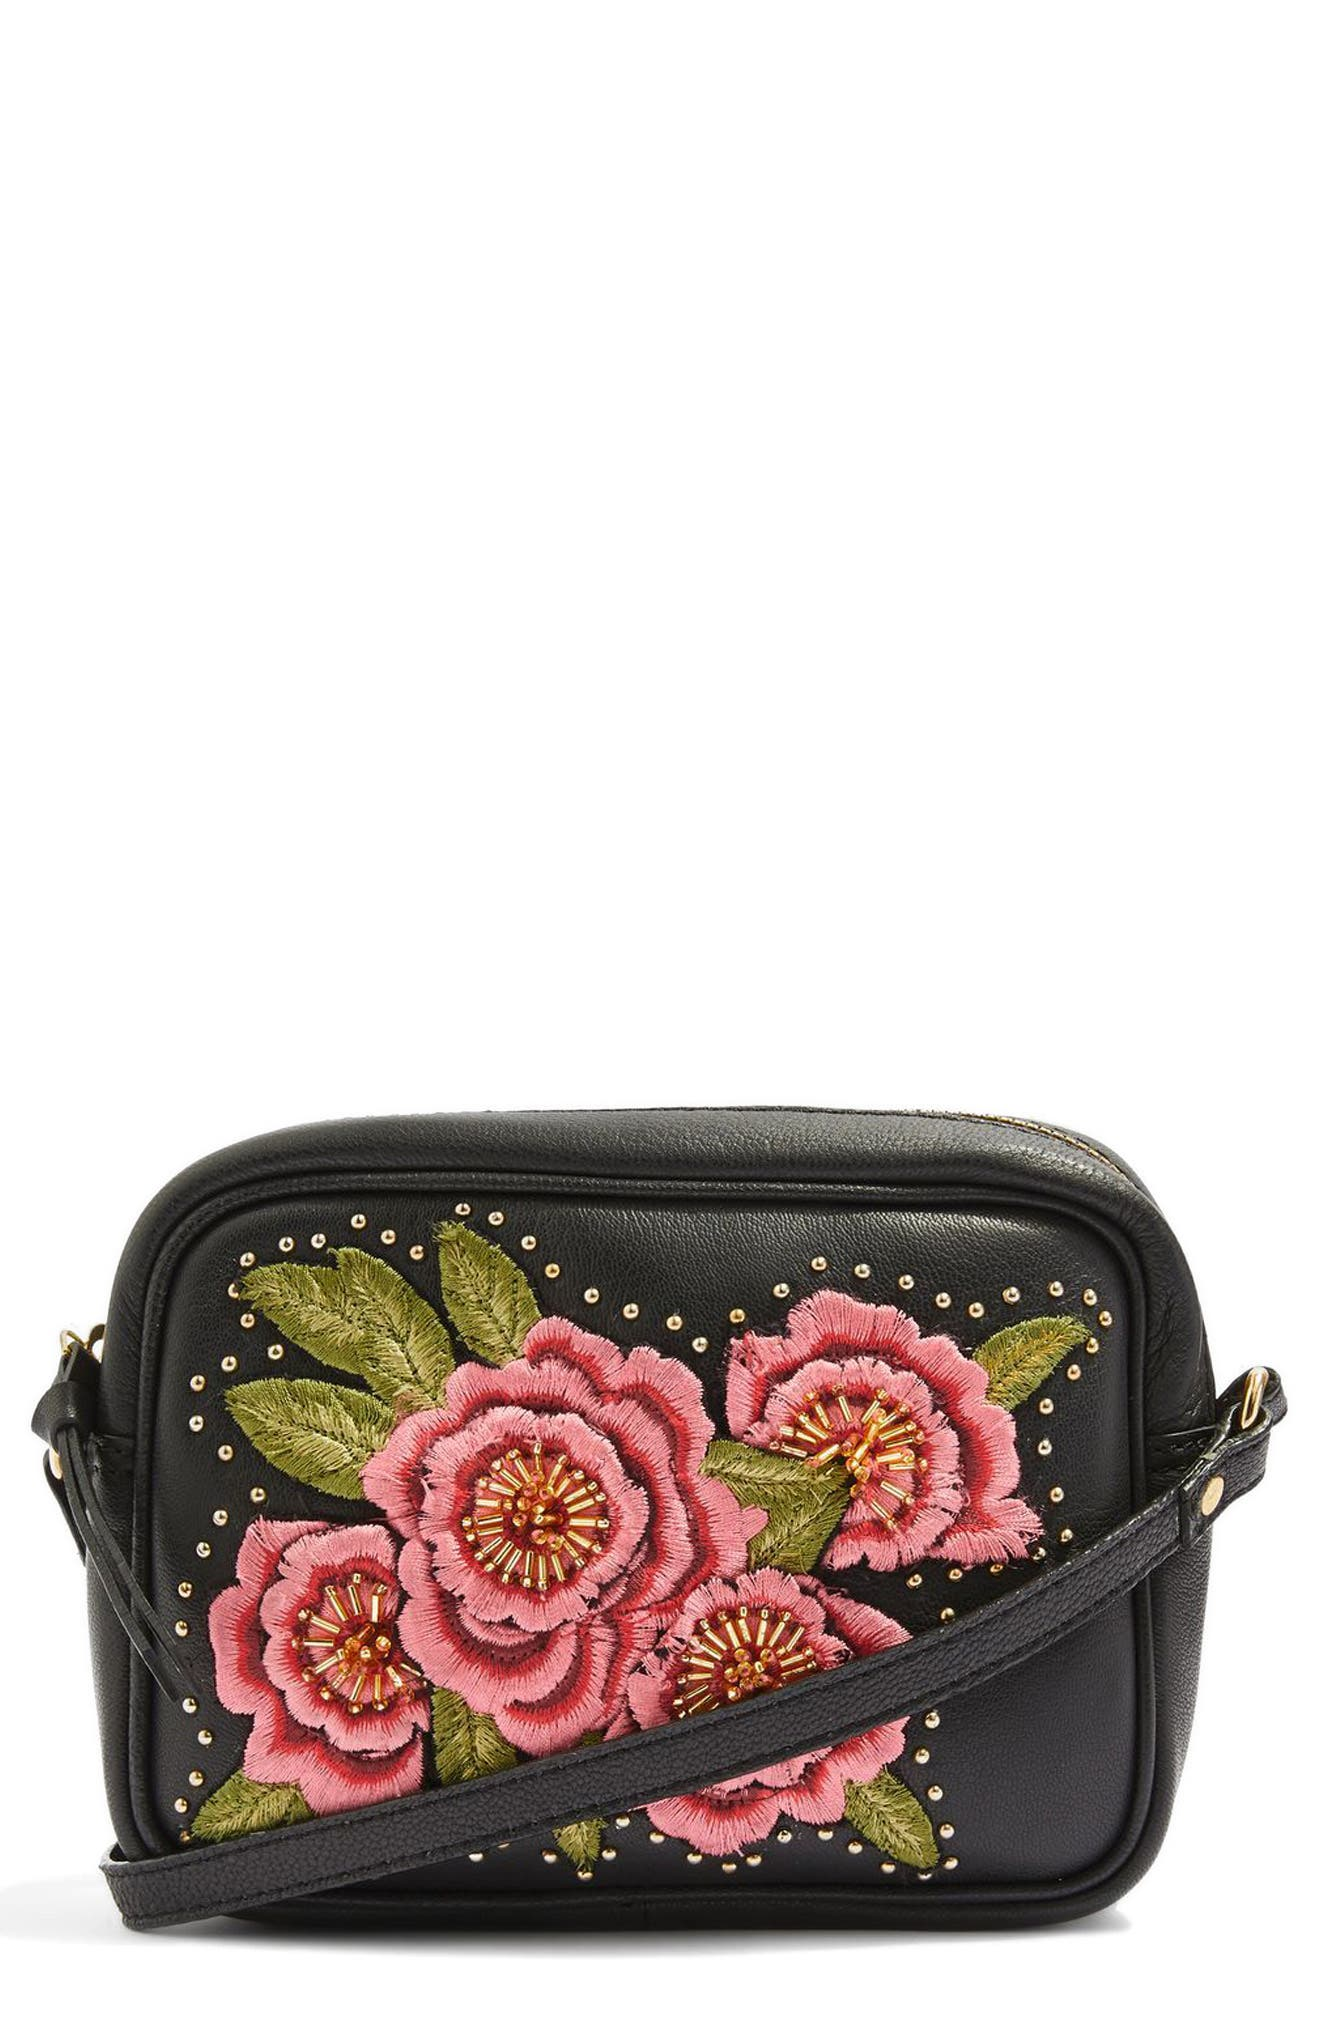 Alternate Image 1 Selected - Topshop Floral Embroidered Leather Crossbody Bag